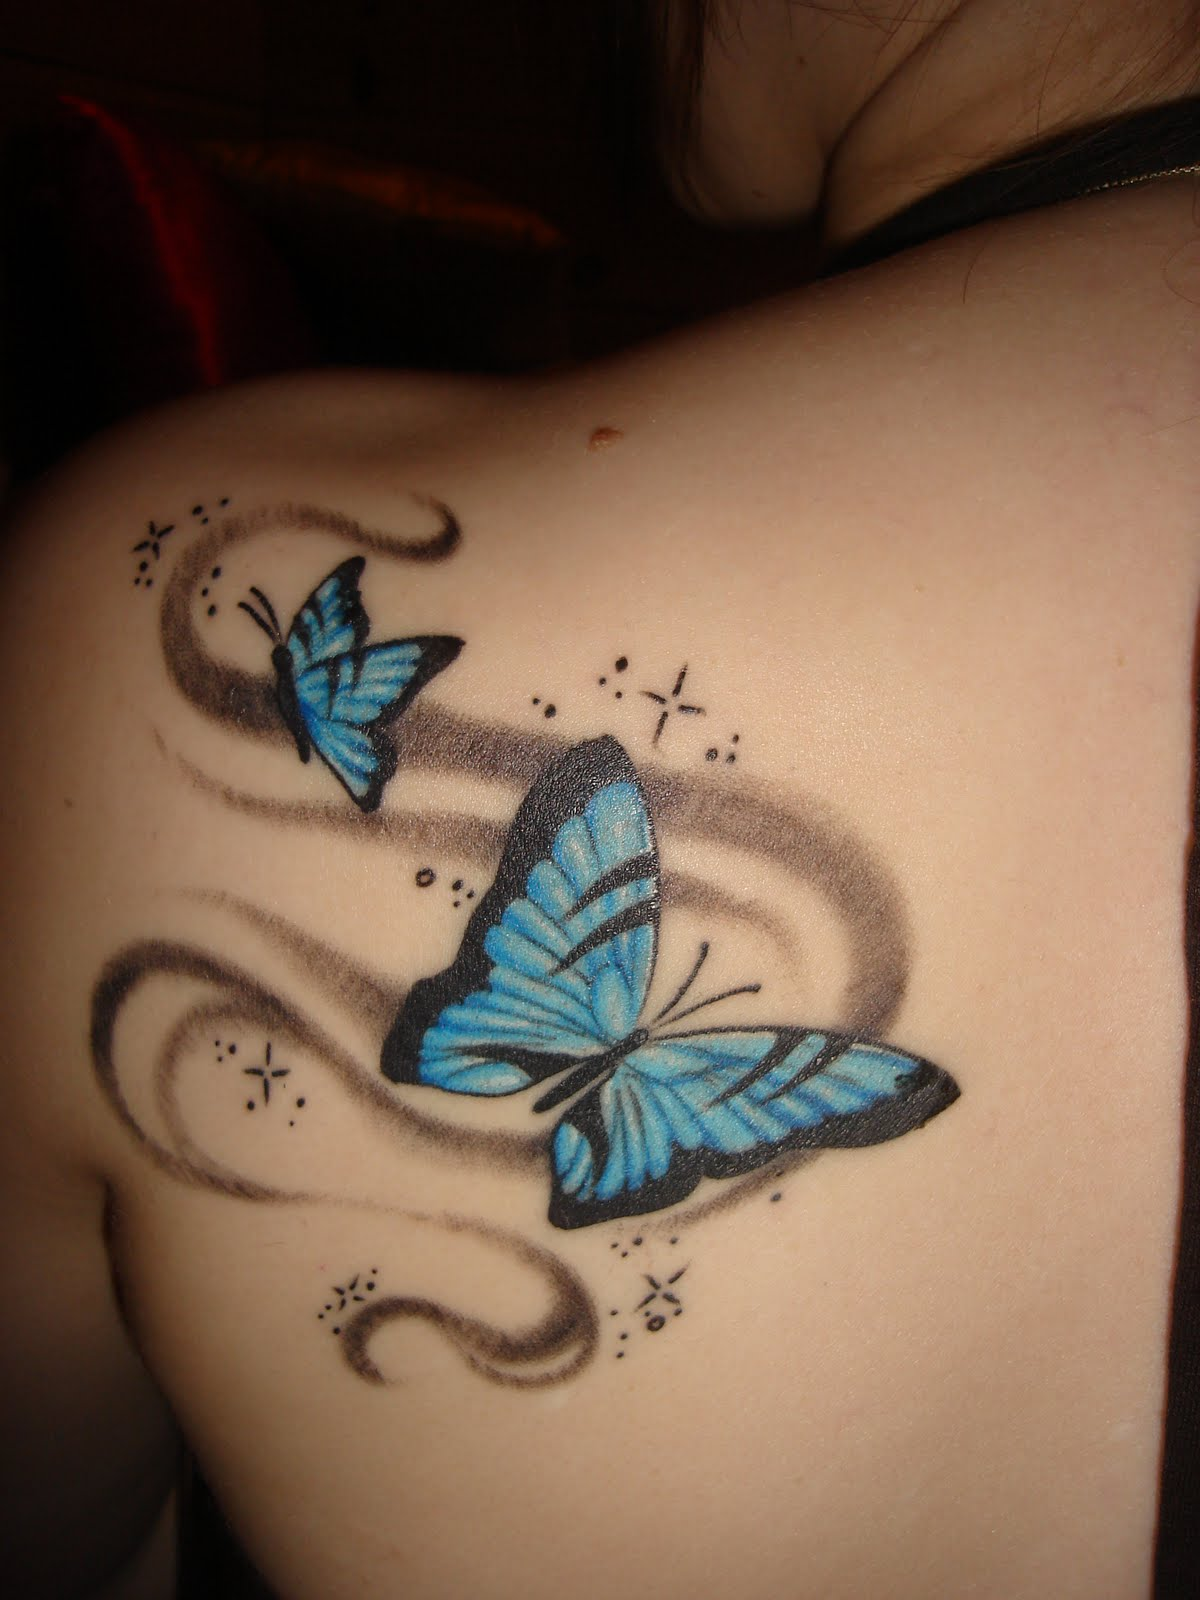 tribal tattoos designs tribal butterfly tattoos. Black Bedroom Furniture Sets. Home Design Ideas